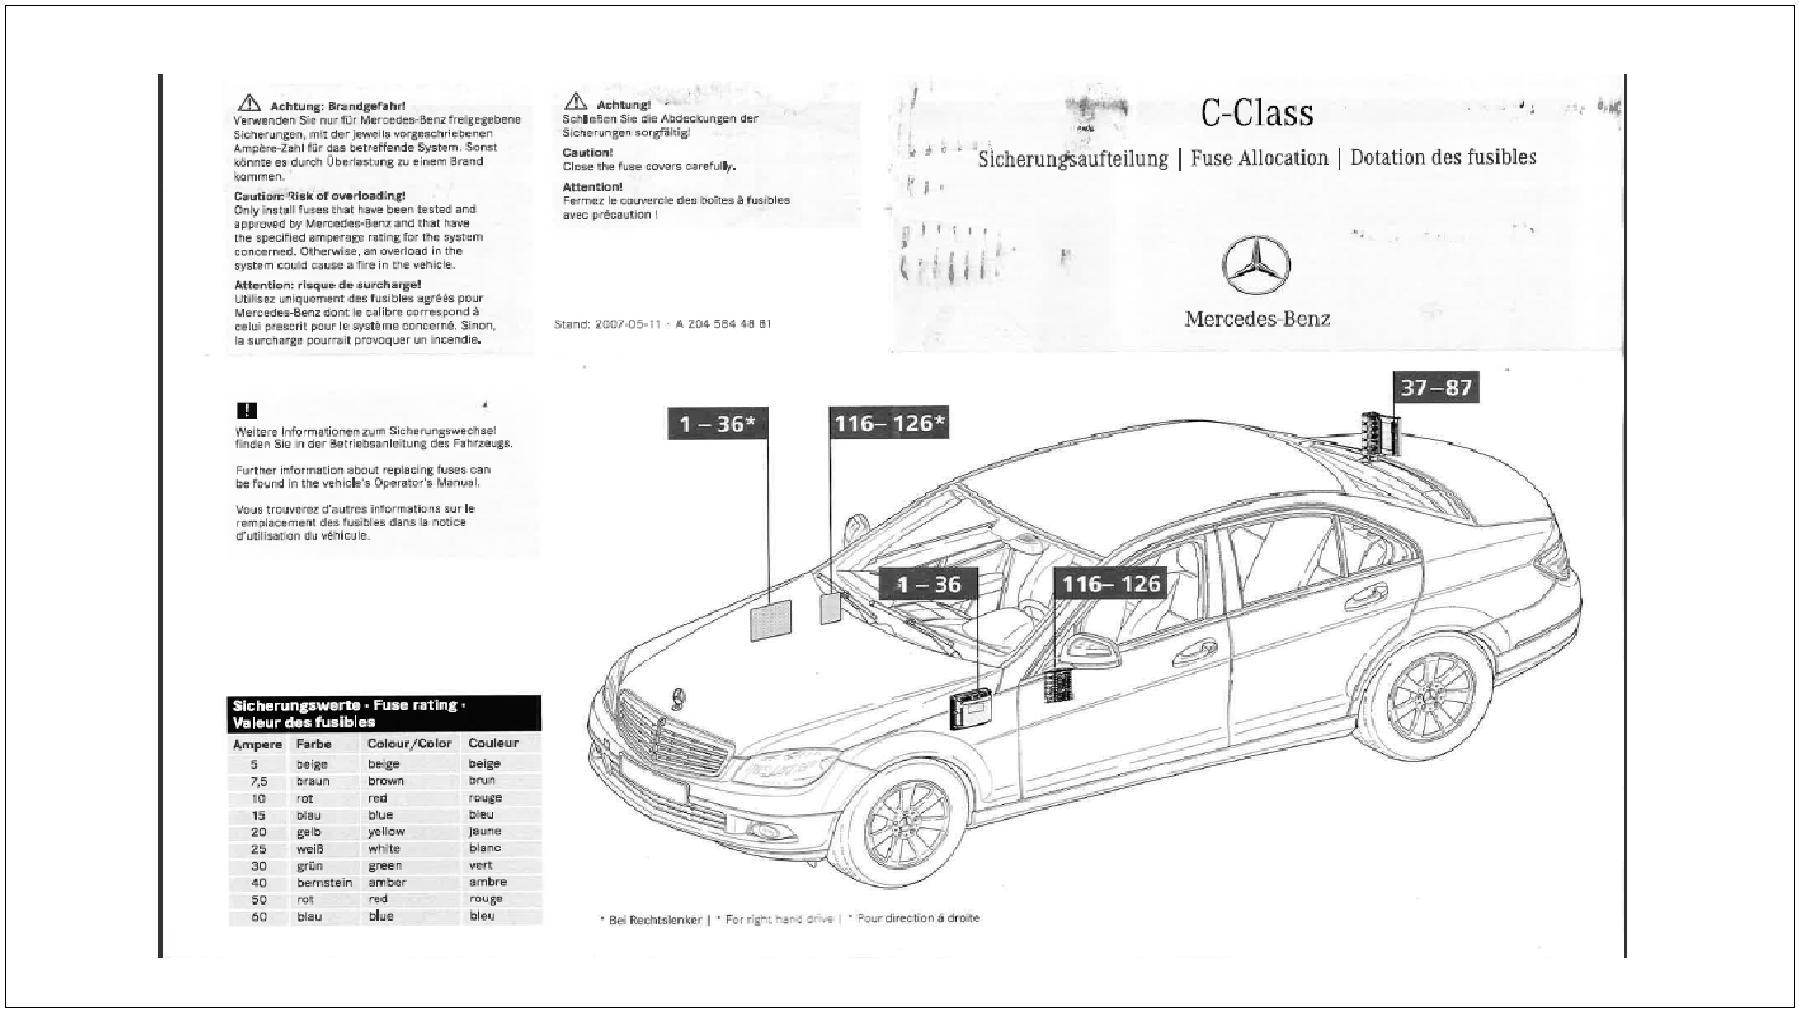 hight resolution of 2008 mercedes c300 fuse diagram trunk automotive wiring diagrams 2000 mercedes s430 fuse diagram 2011 c300 fuse box diagram